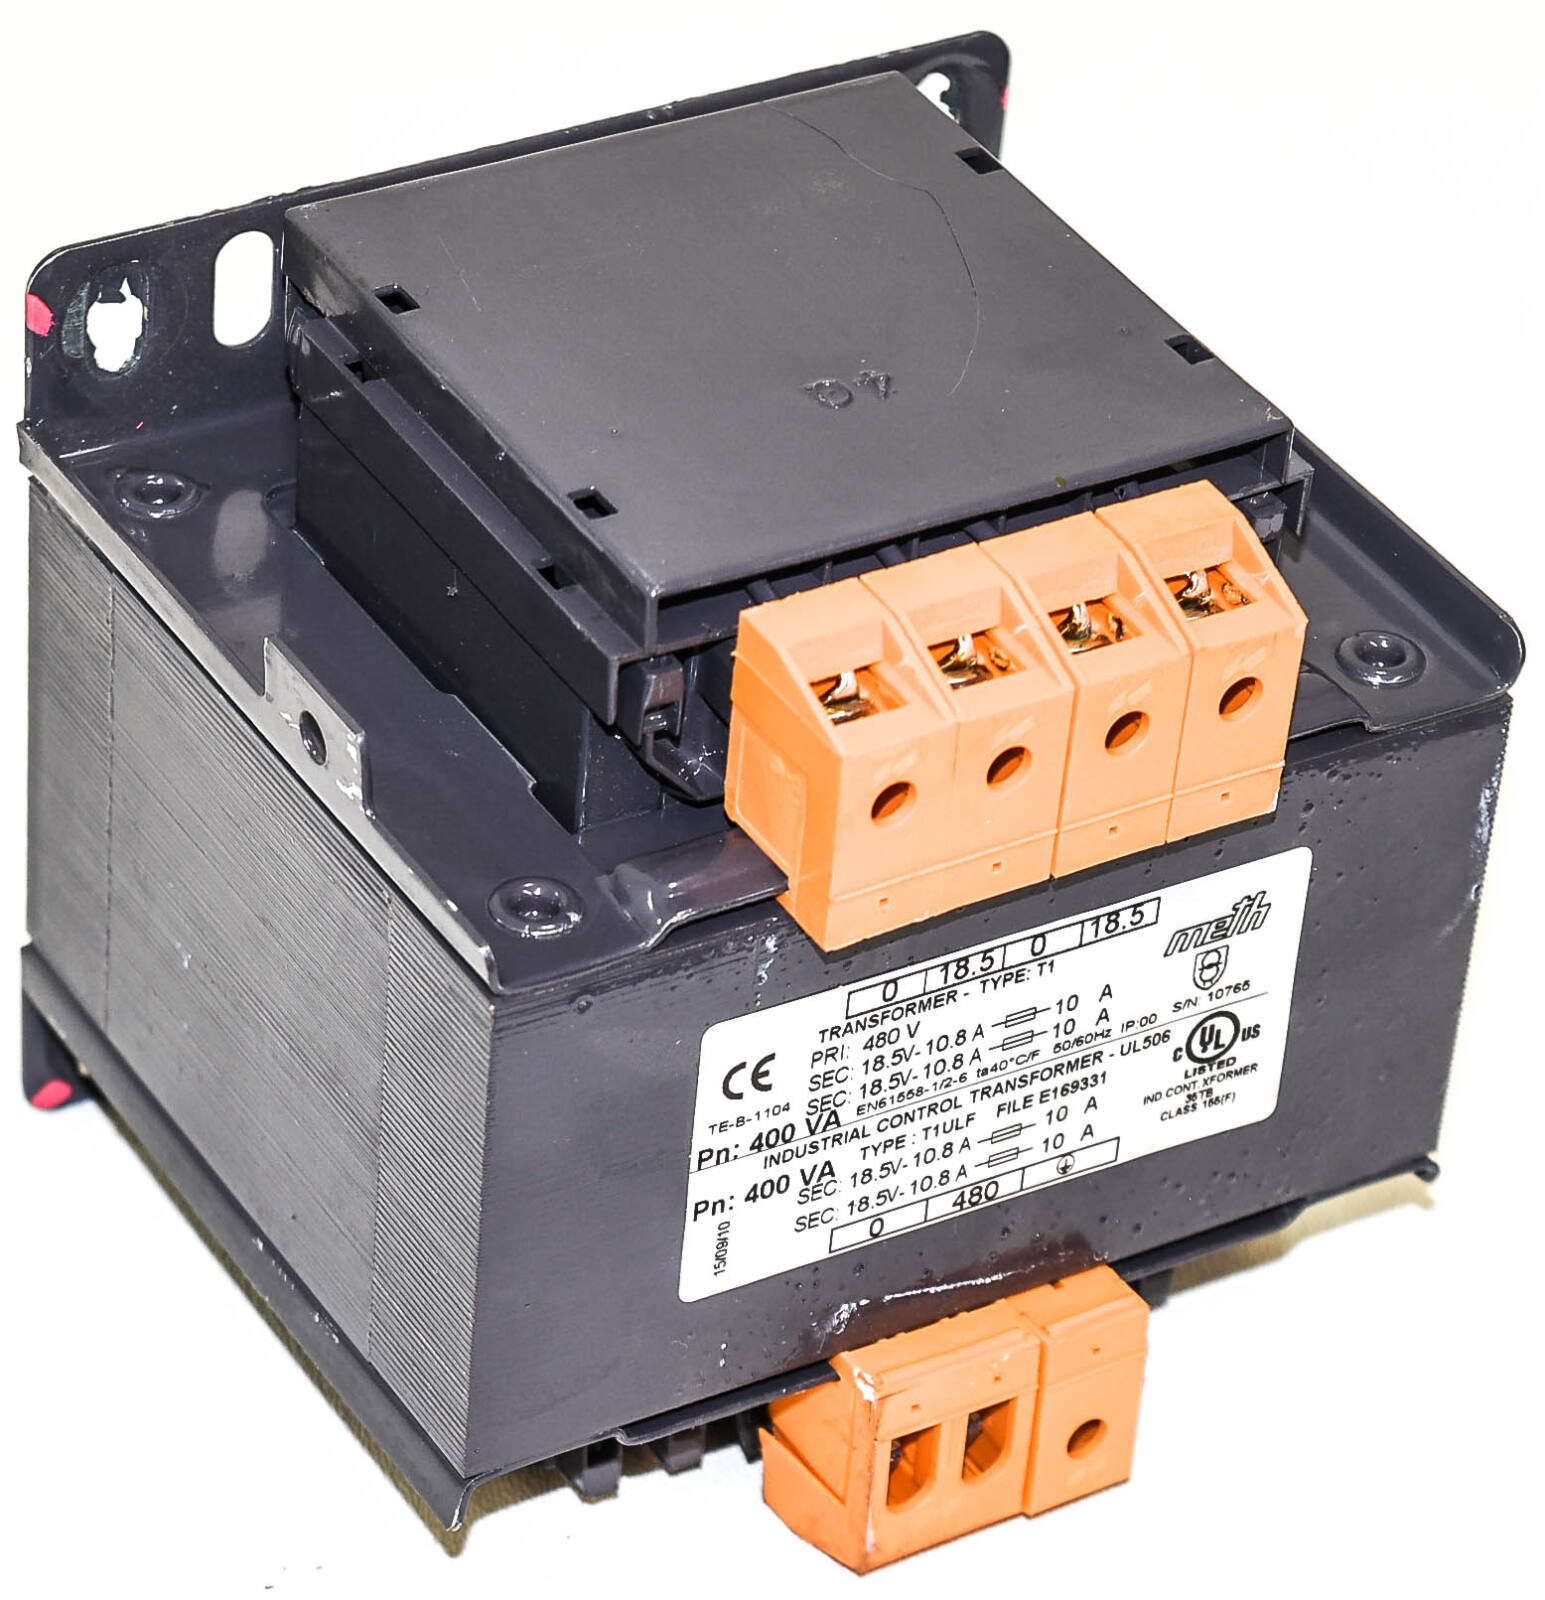 Global Industrial Control Transformer Market: Growth and Changes Influencing the Industry 2020-2026